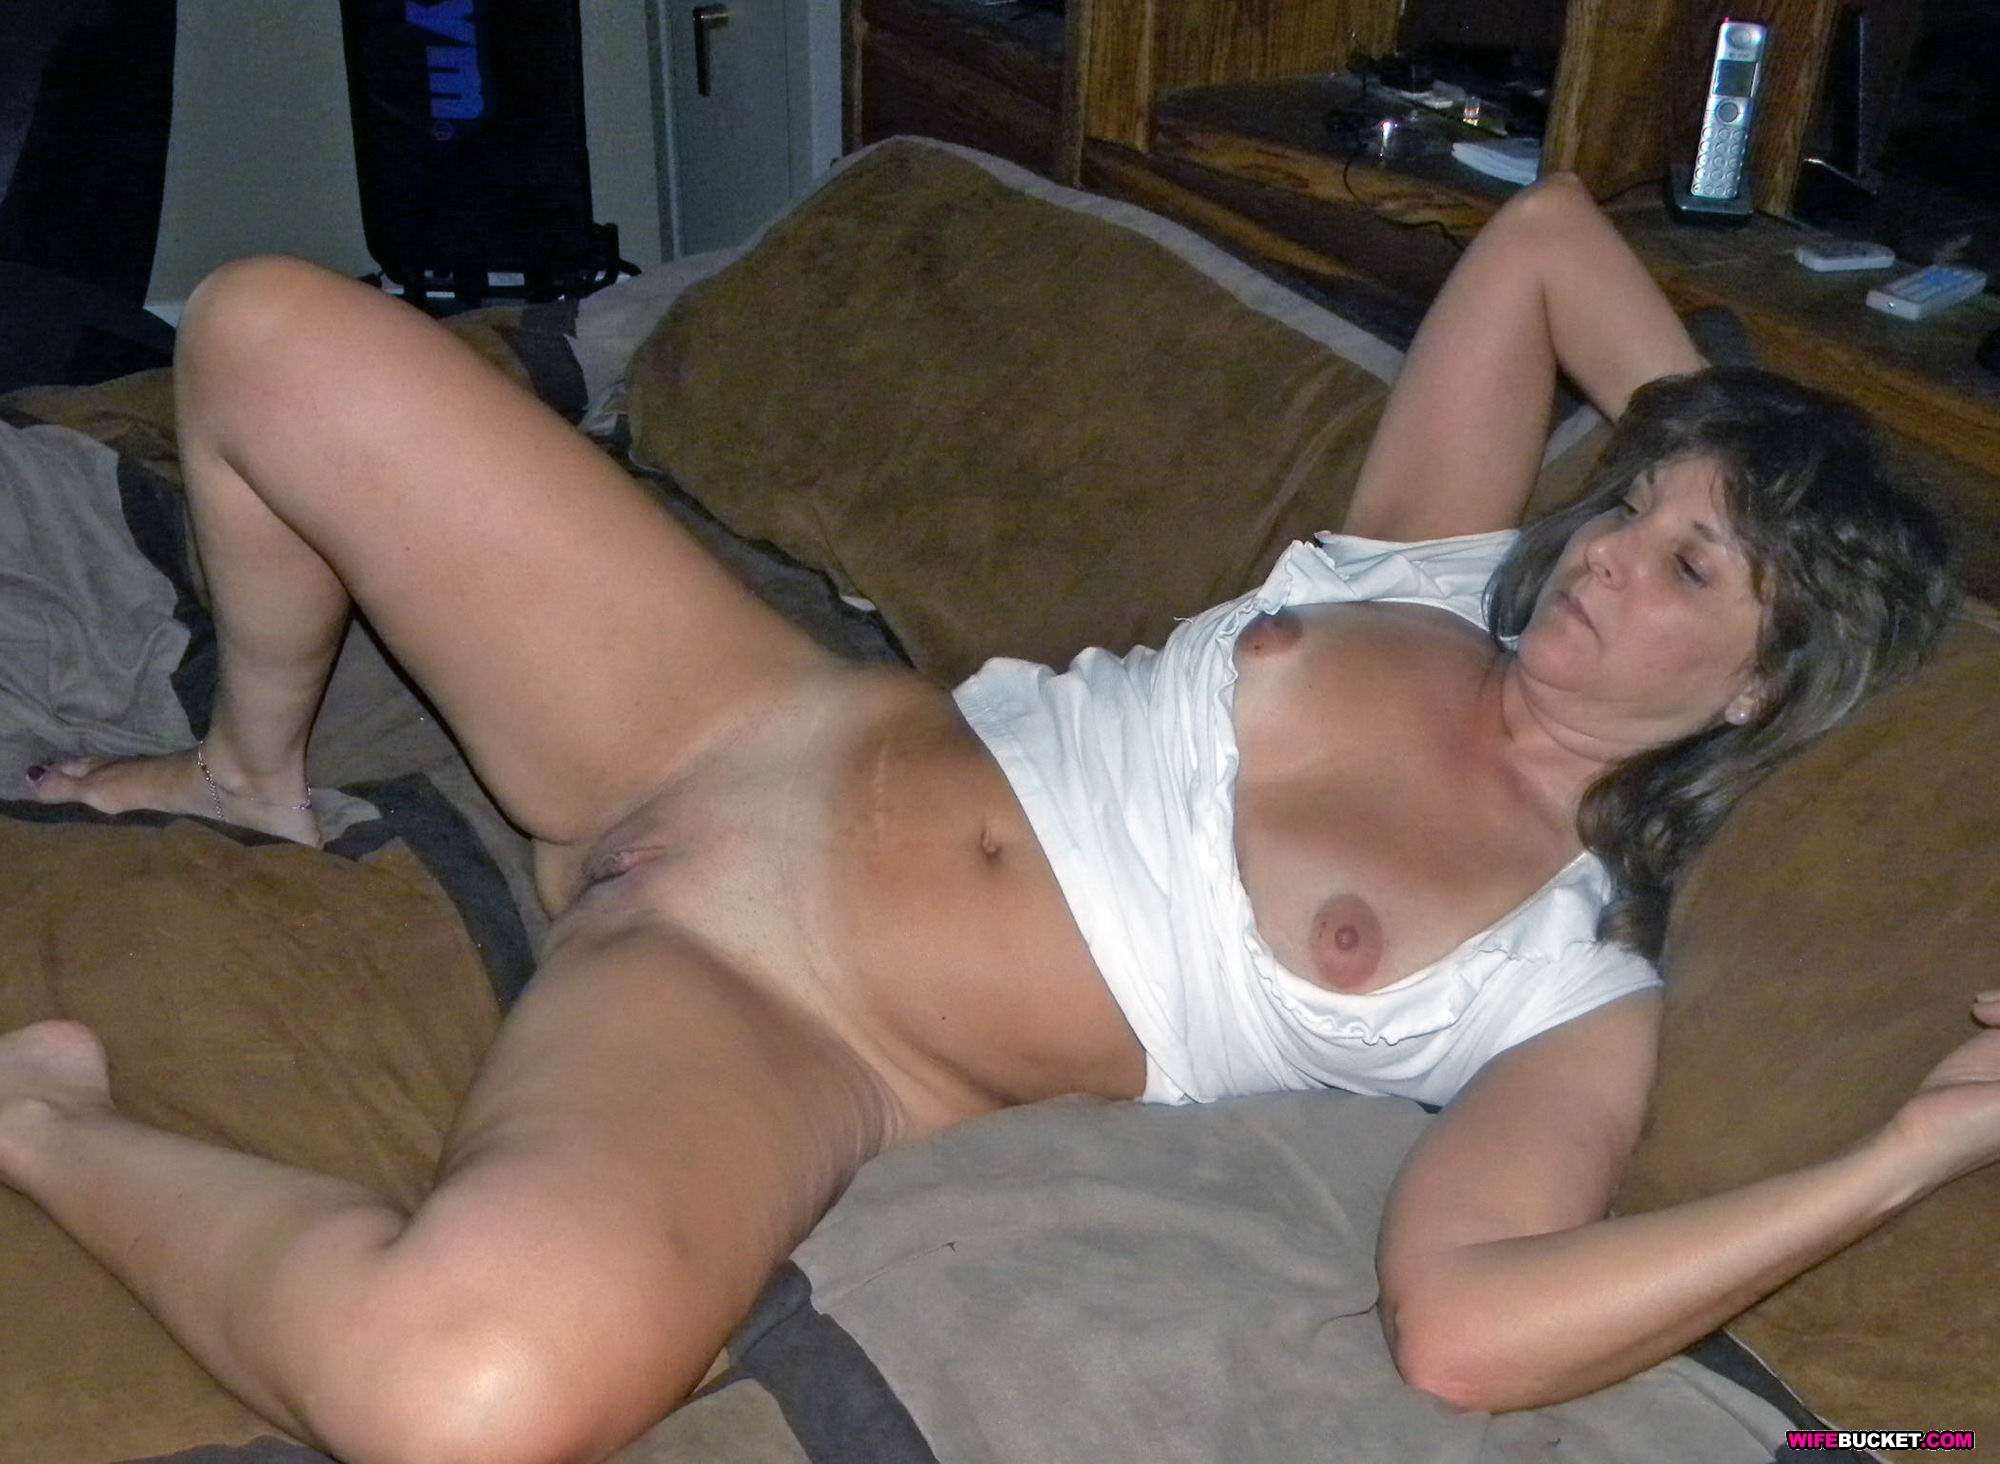 Wife First Time Shared  Free Porn Videos  YouPorn